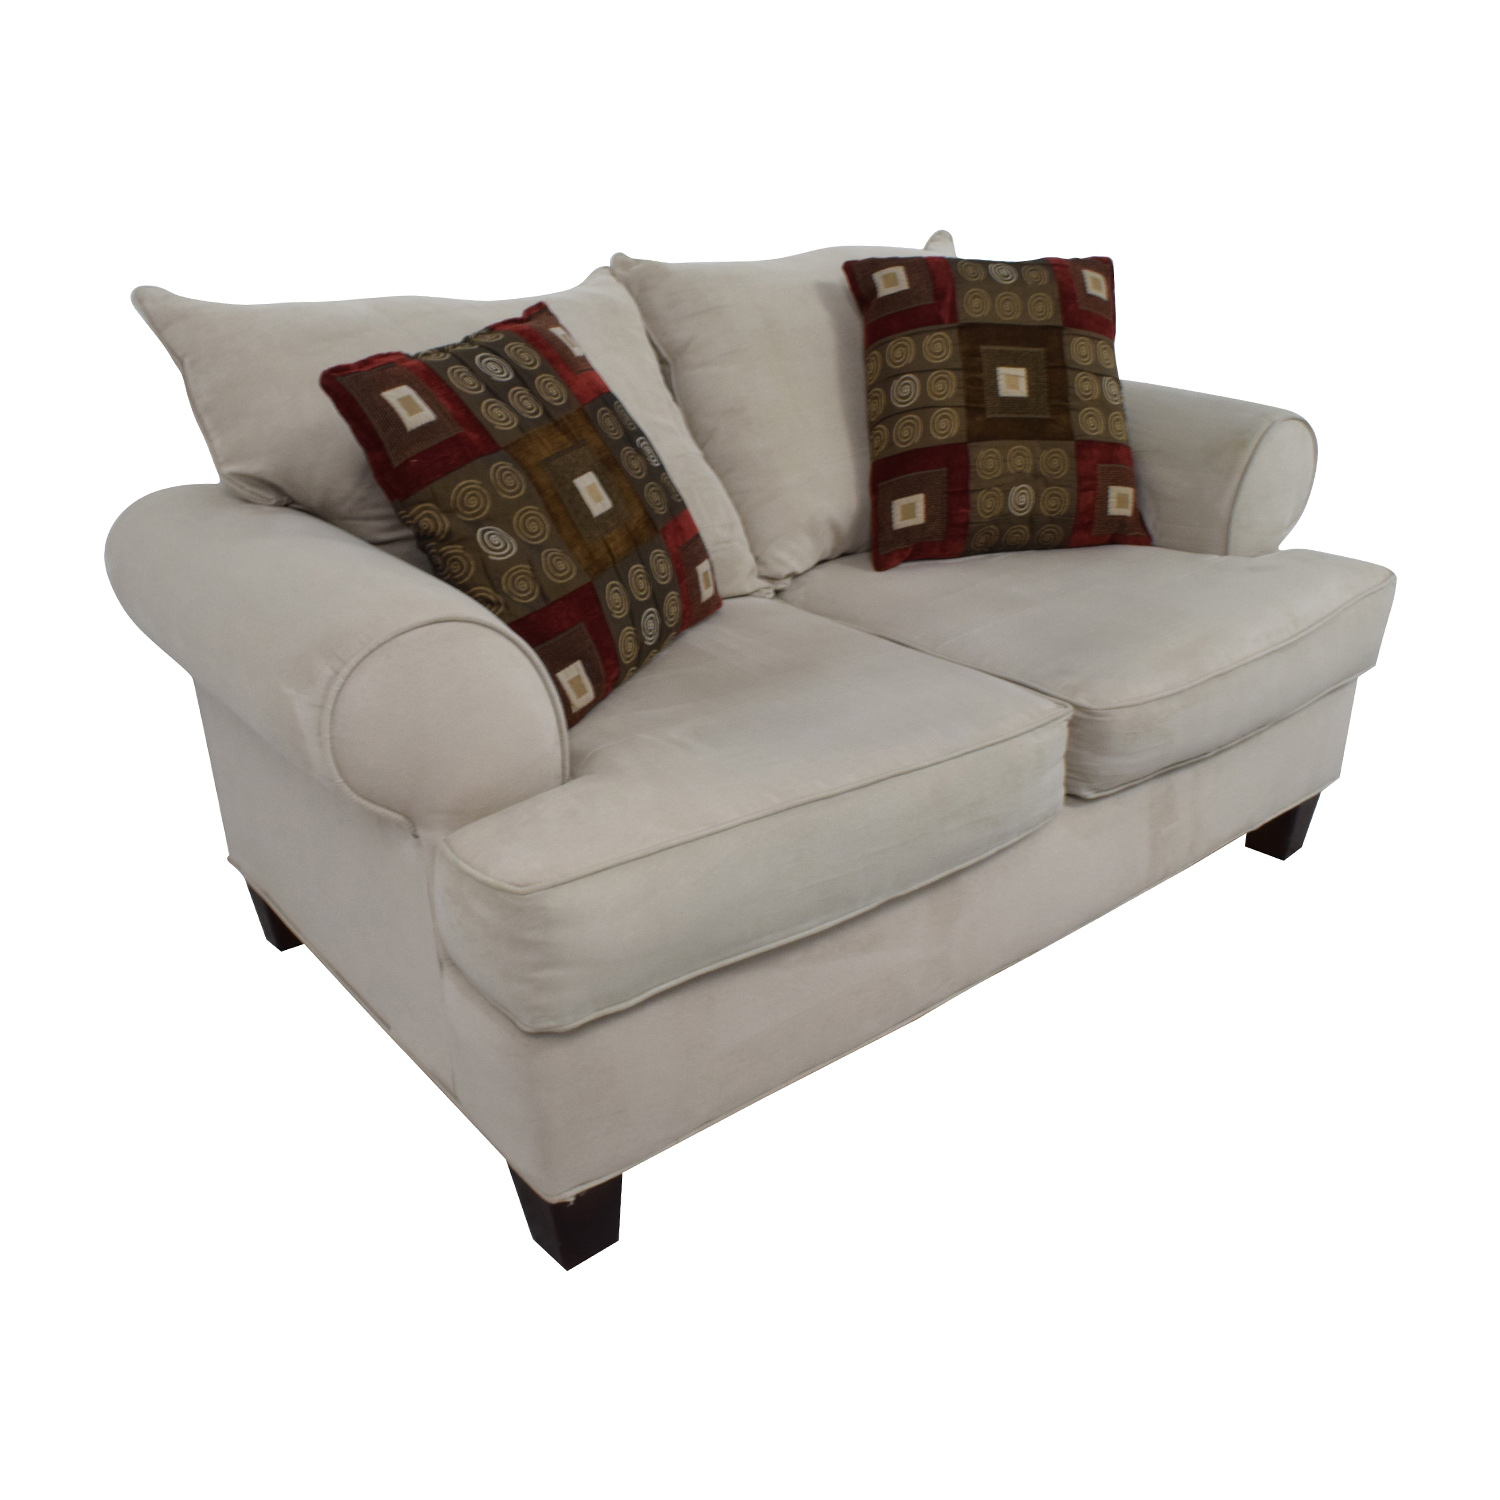 cheap cream sofa doctor boston 67 off bob 39s discount furniture